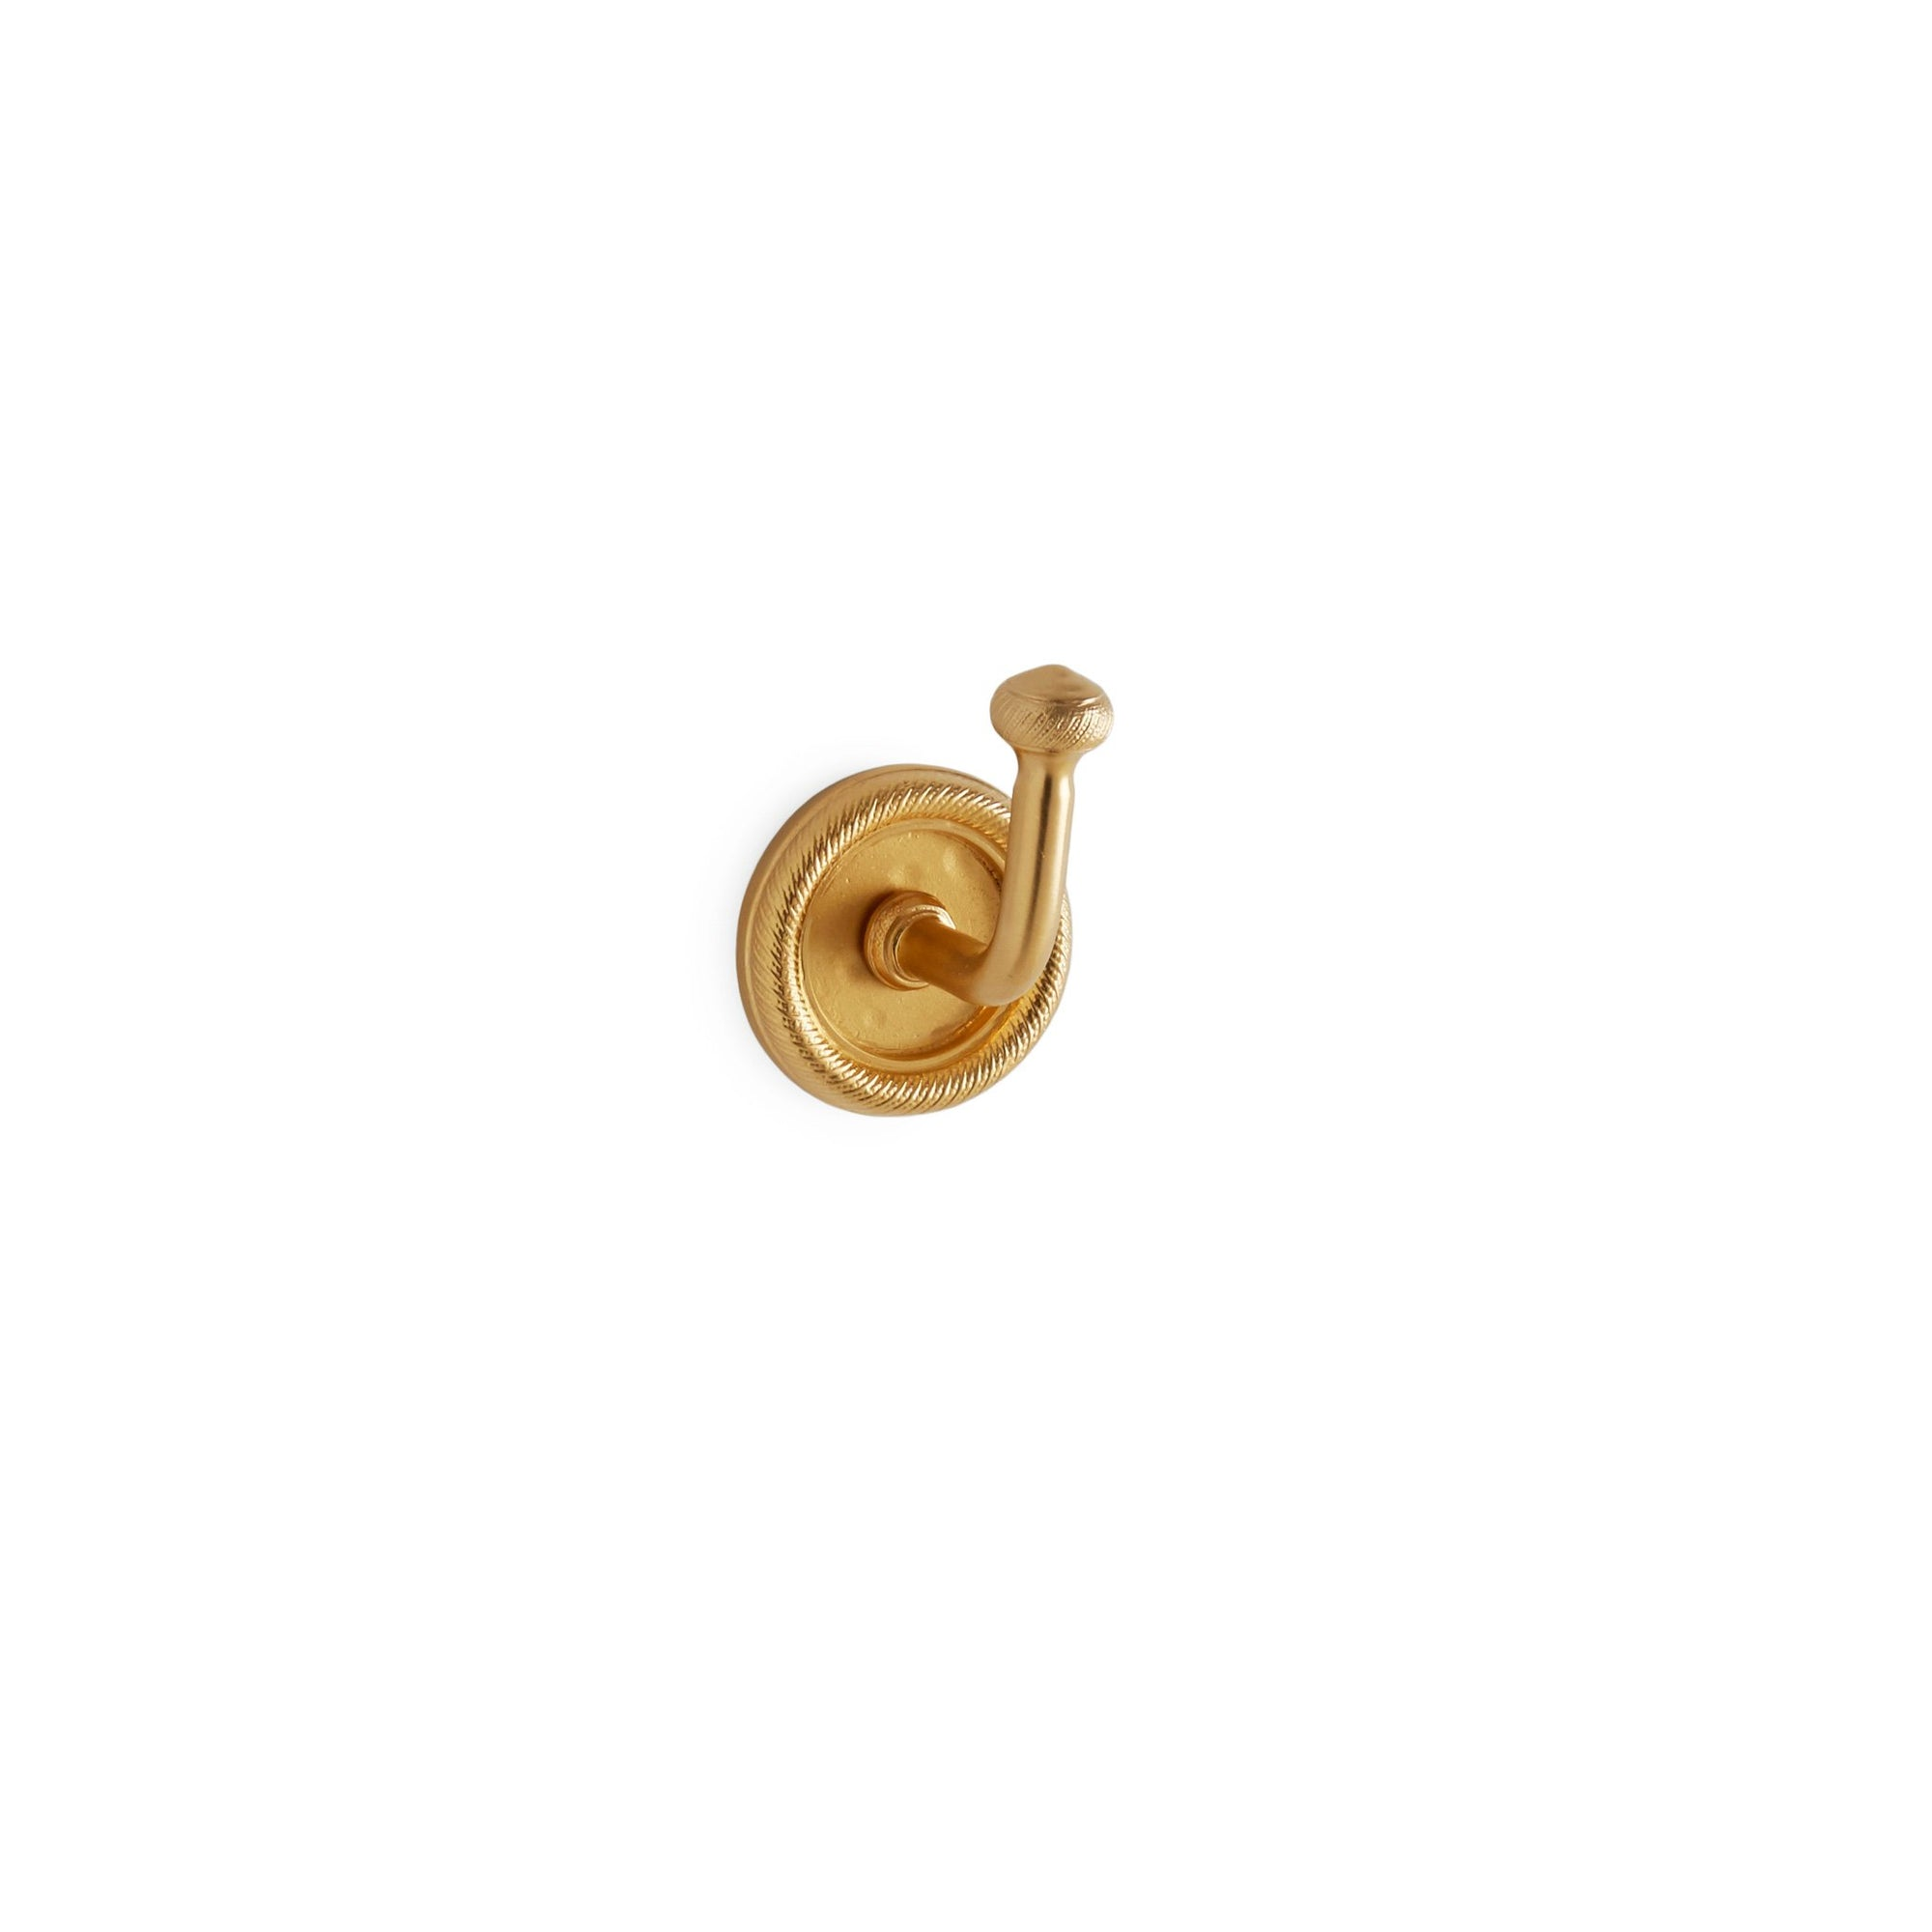 3437-GP Sherle Wagner International Classical Knurled Hook in Gold Plate metal finish